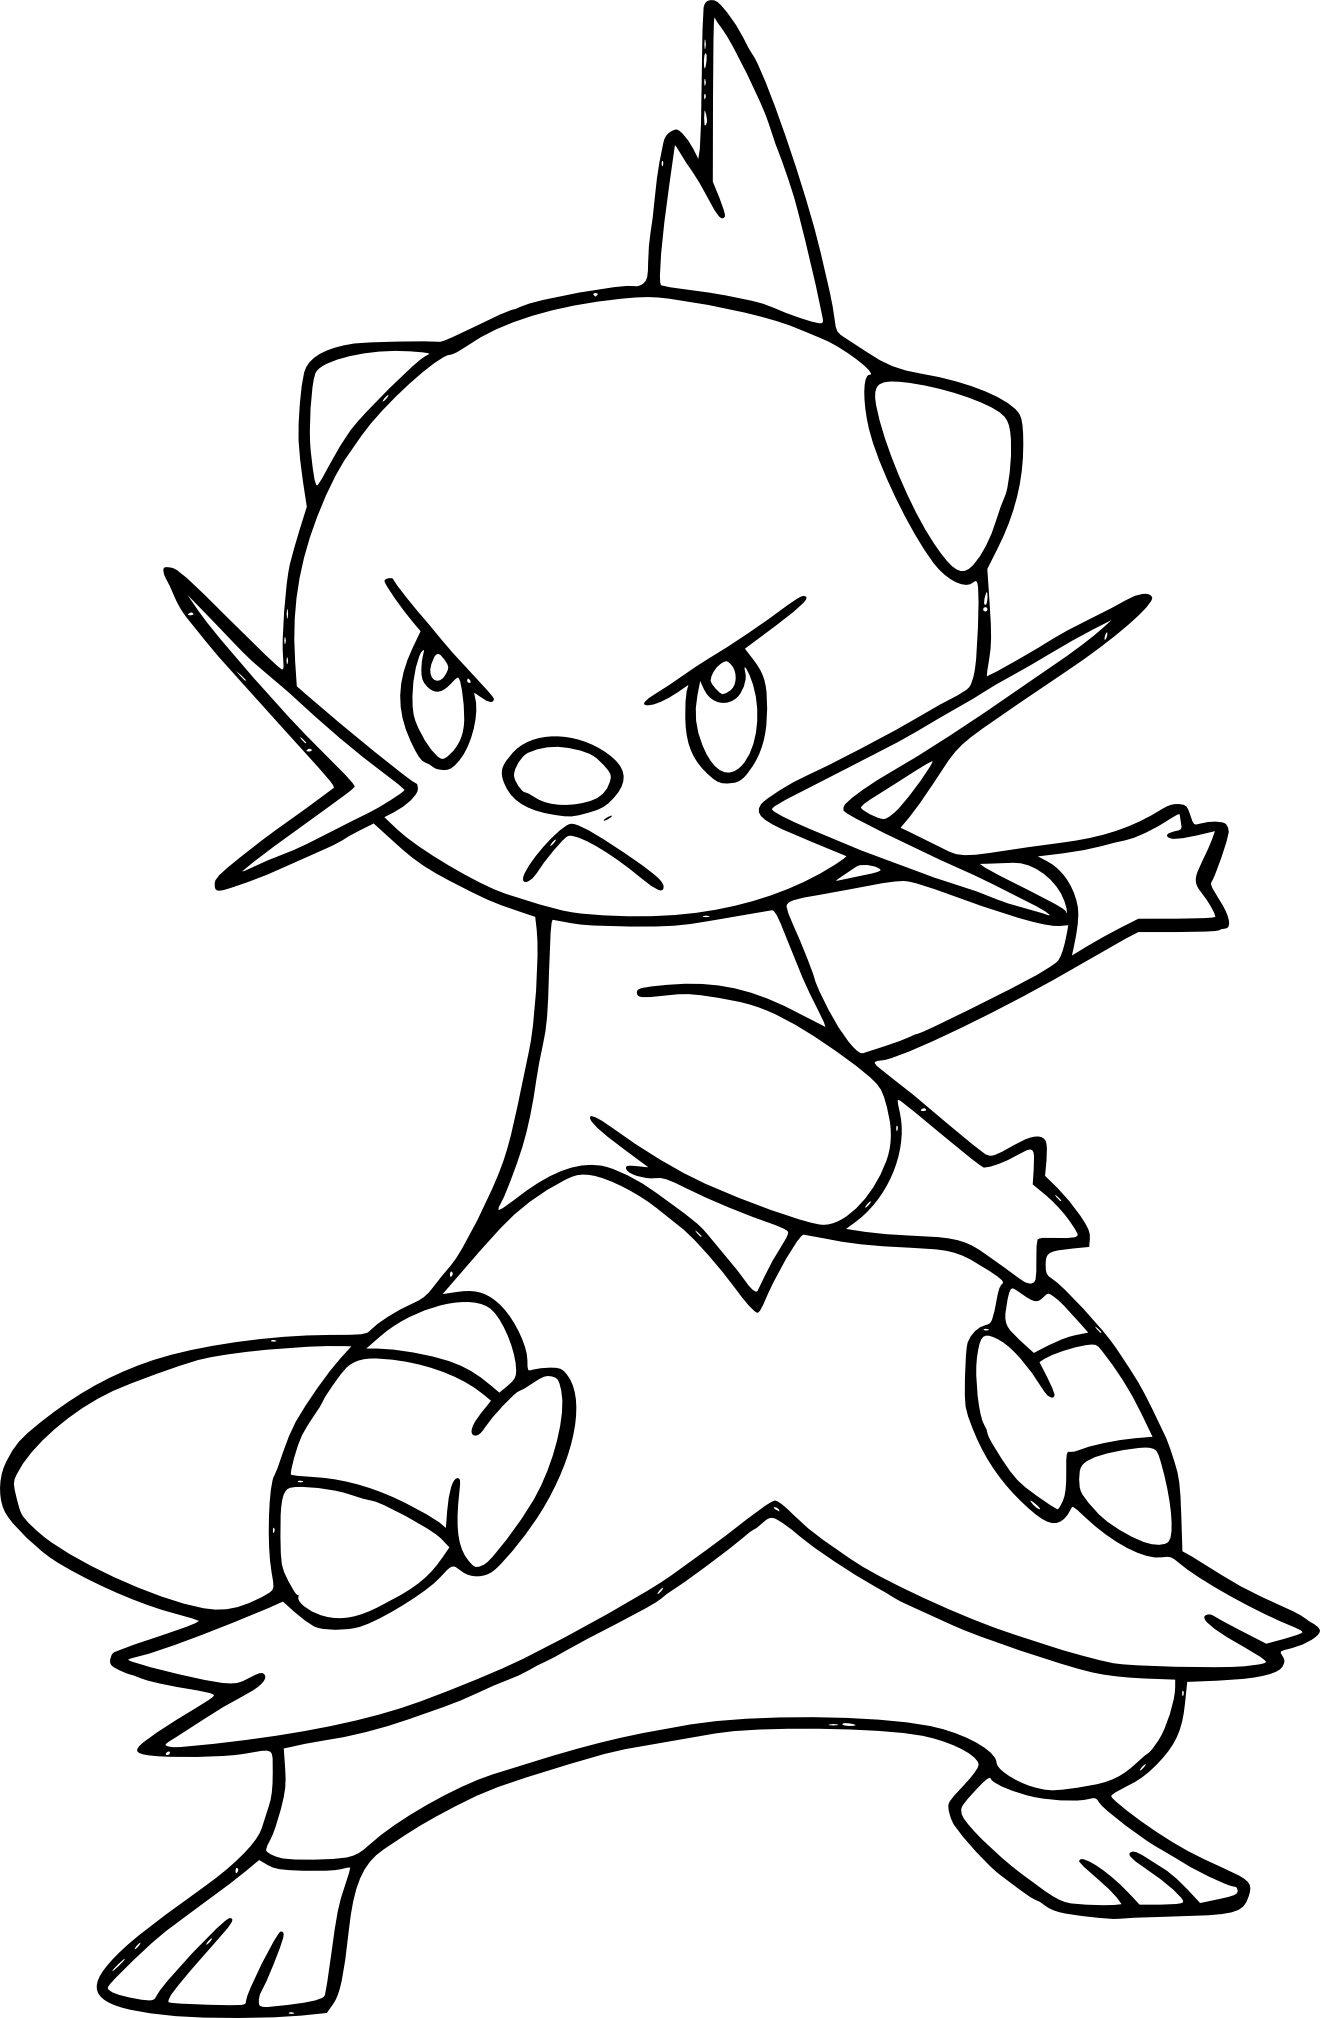 Coloriage Mateloutre Pokemon